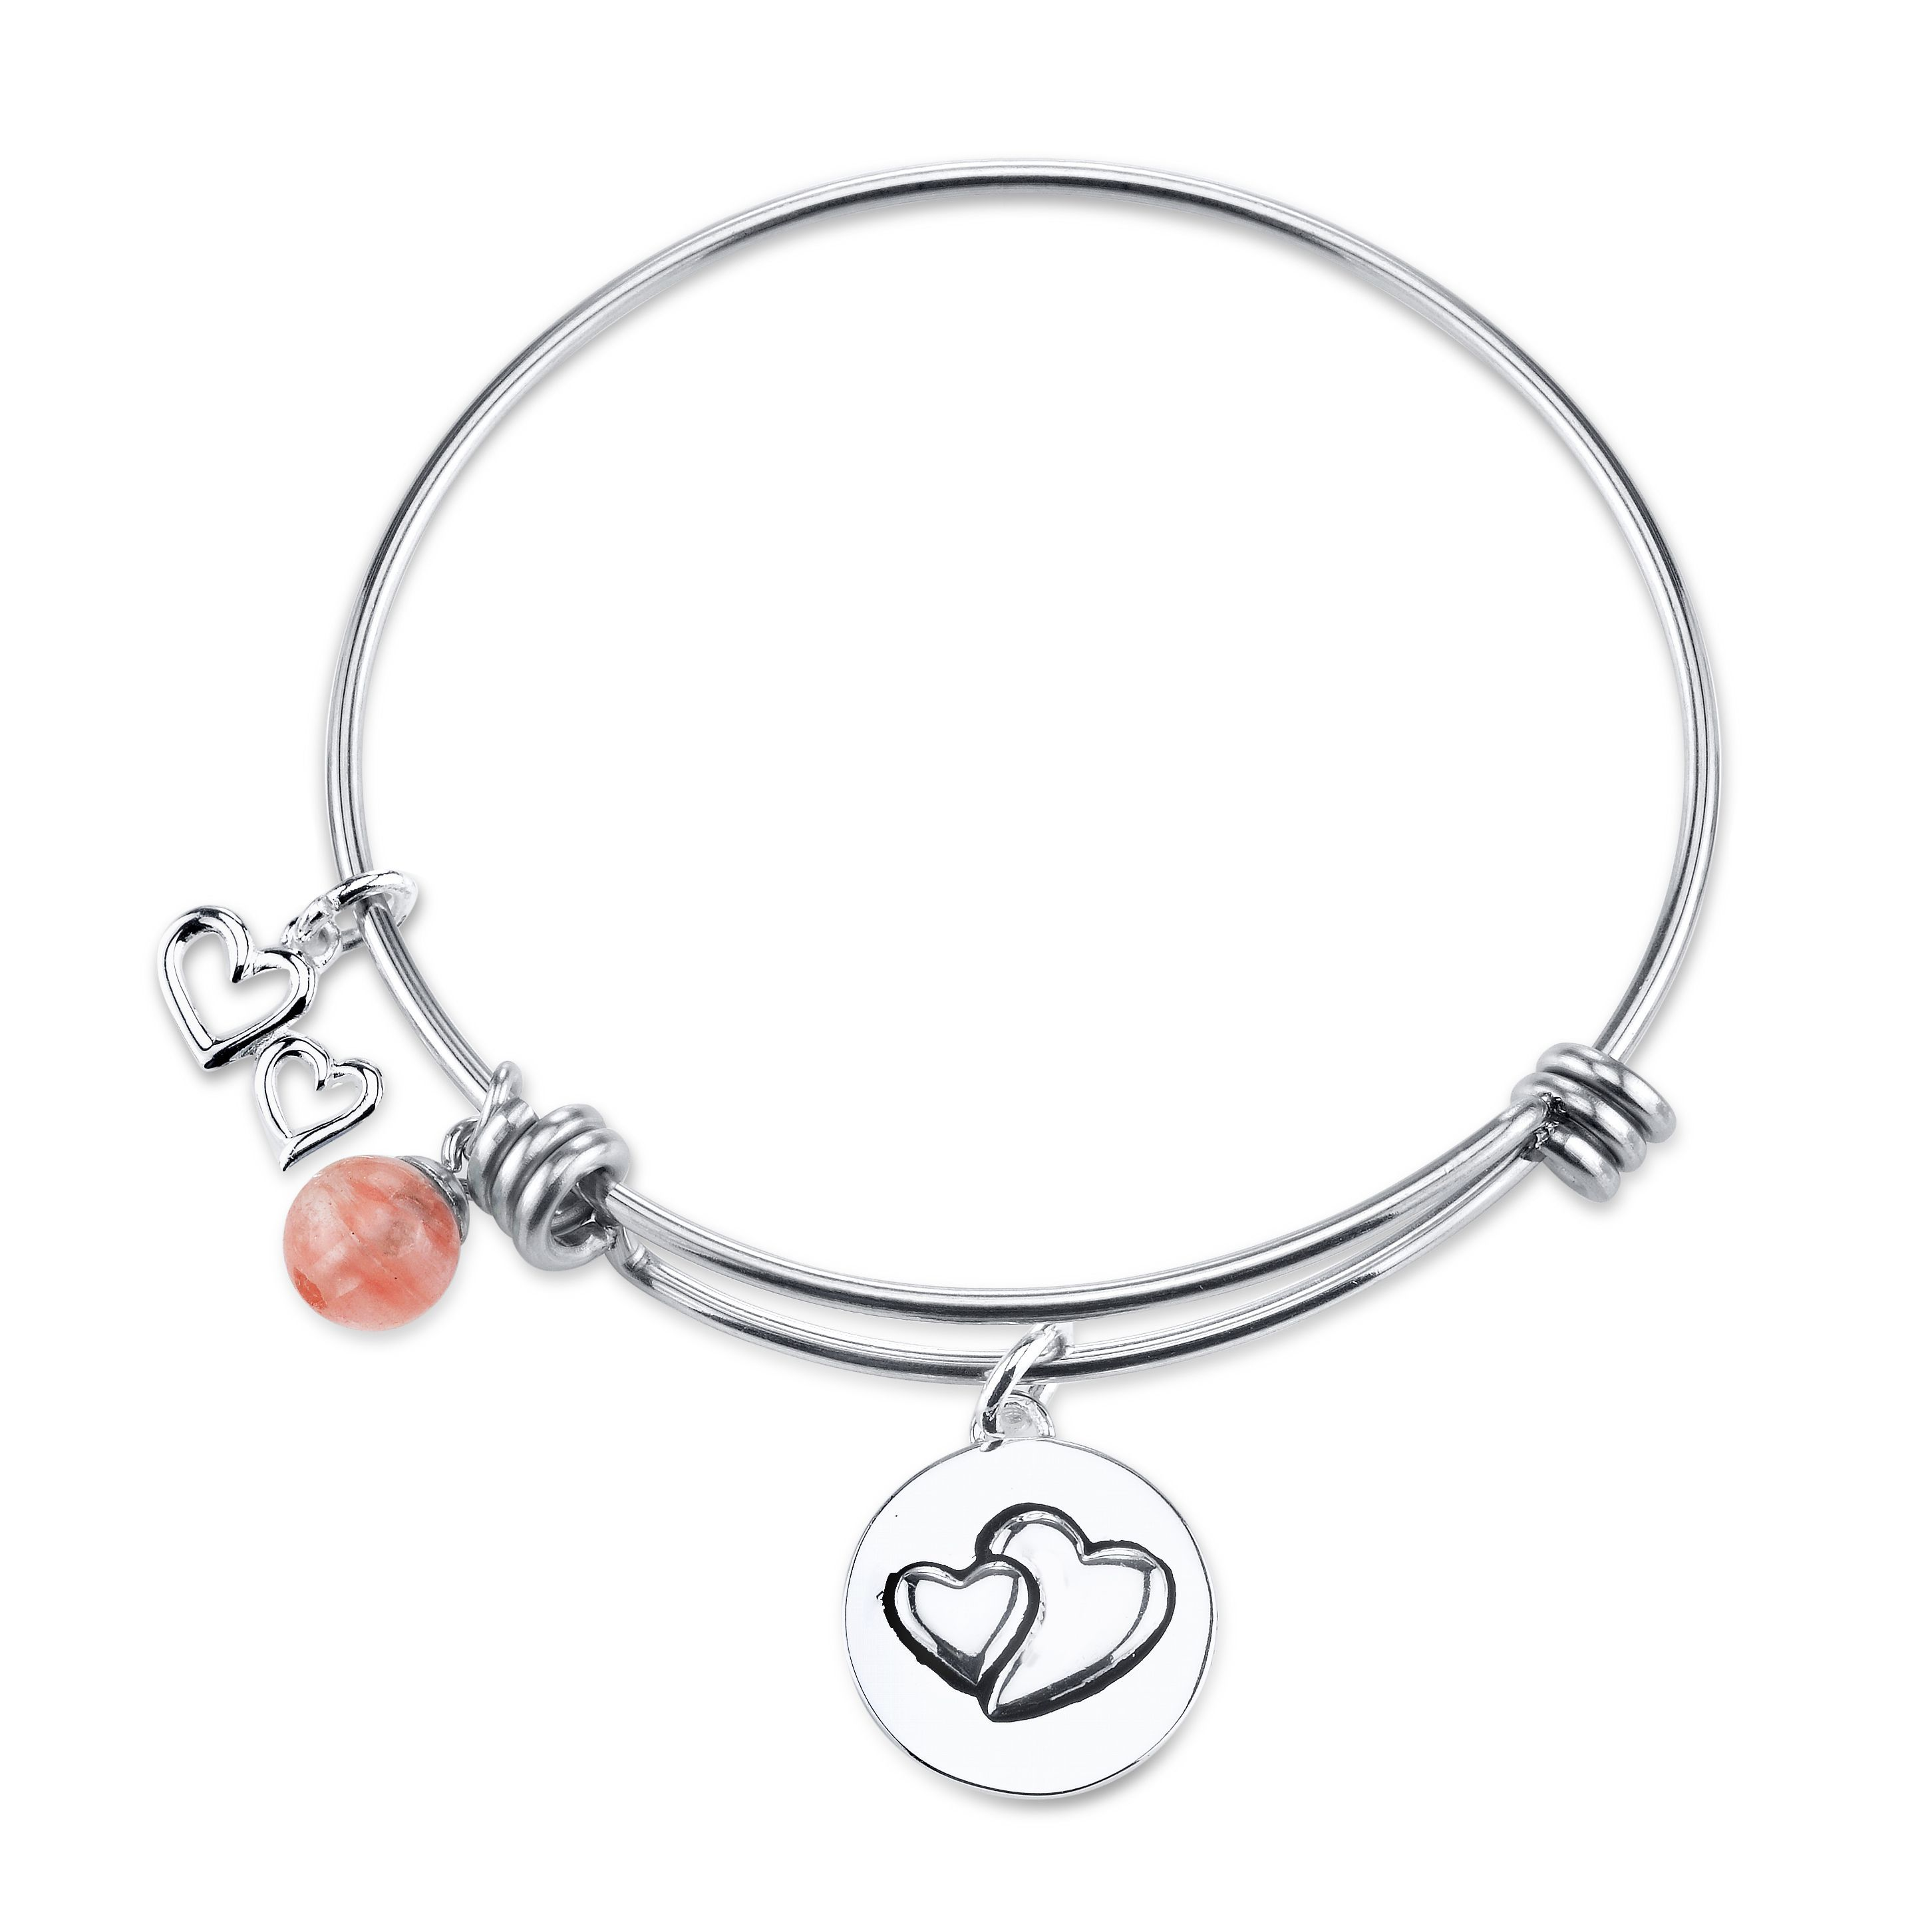 This shine stainless steel expandable bangle keeps your precious